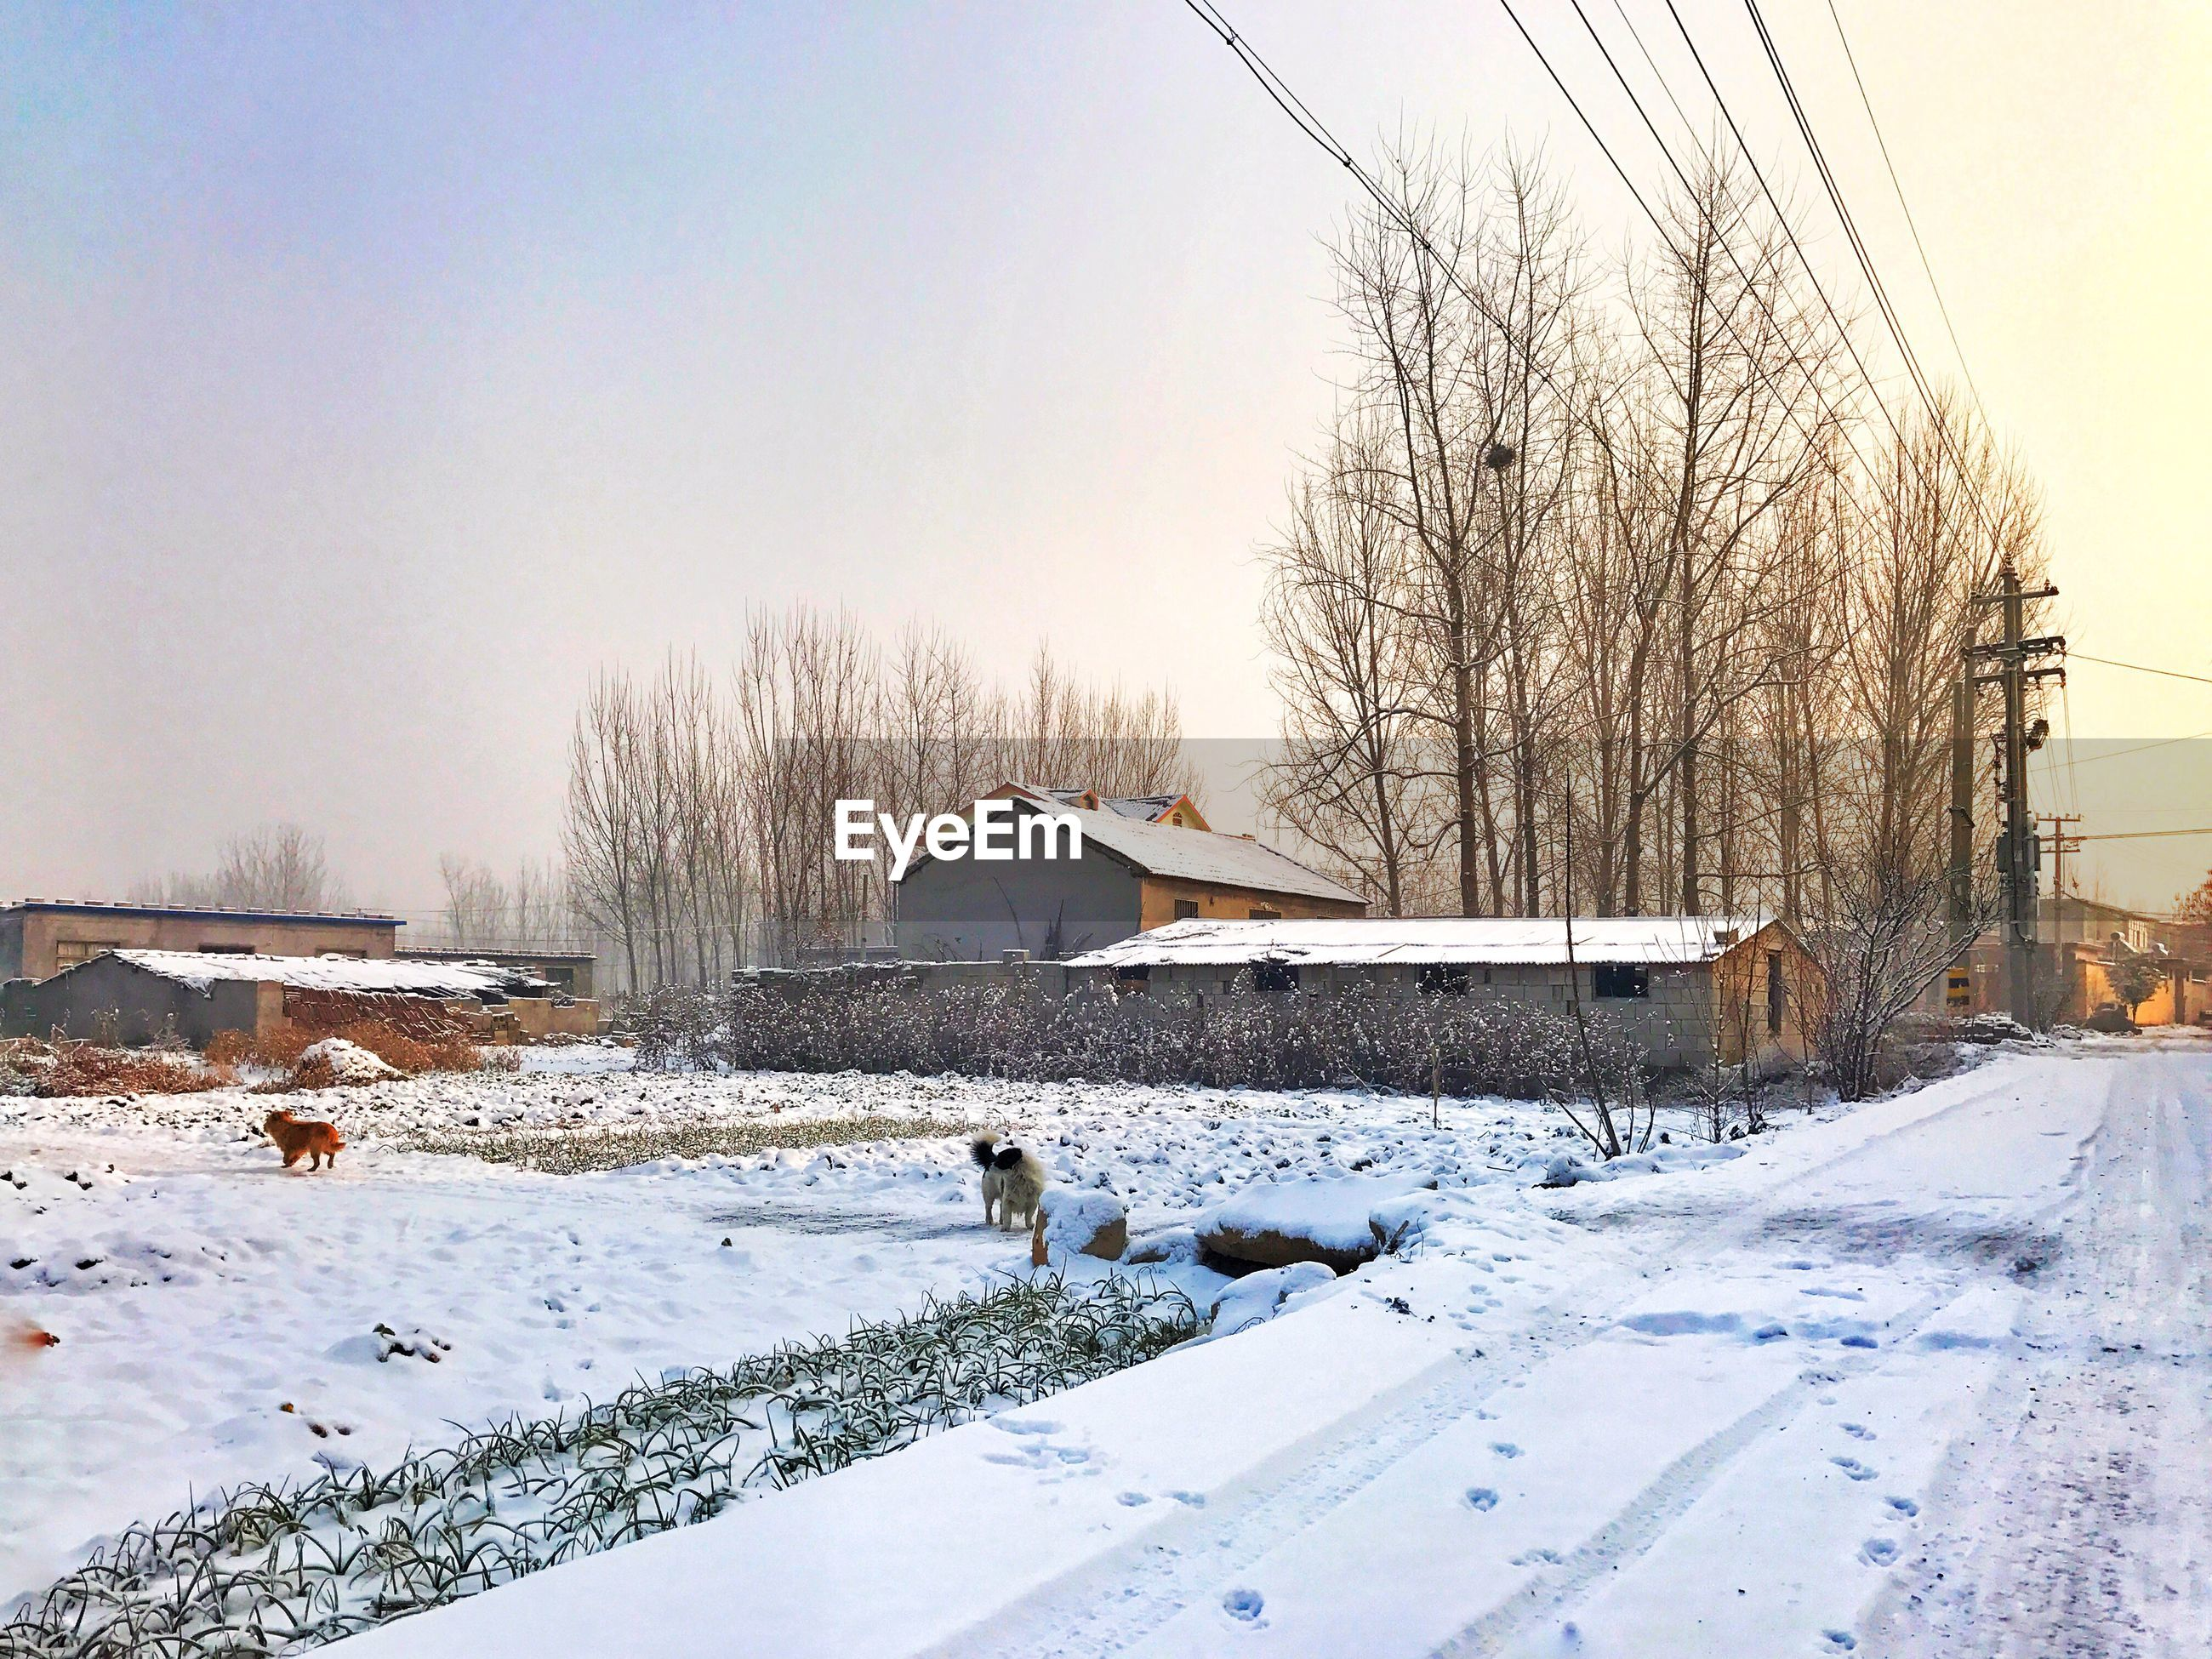 cold temperature, winter, nature, sky, no people, snow, built structure, house, building exterior, outdoors, bird, tree, clear sky, sunset, day, beauty in nature, animal themes, architecture